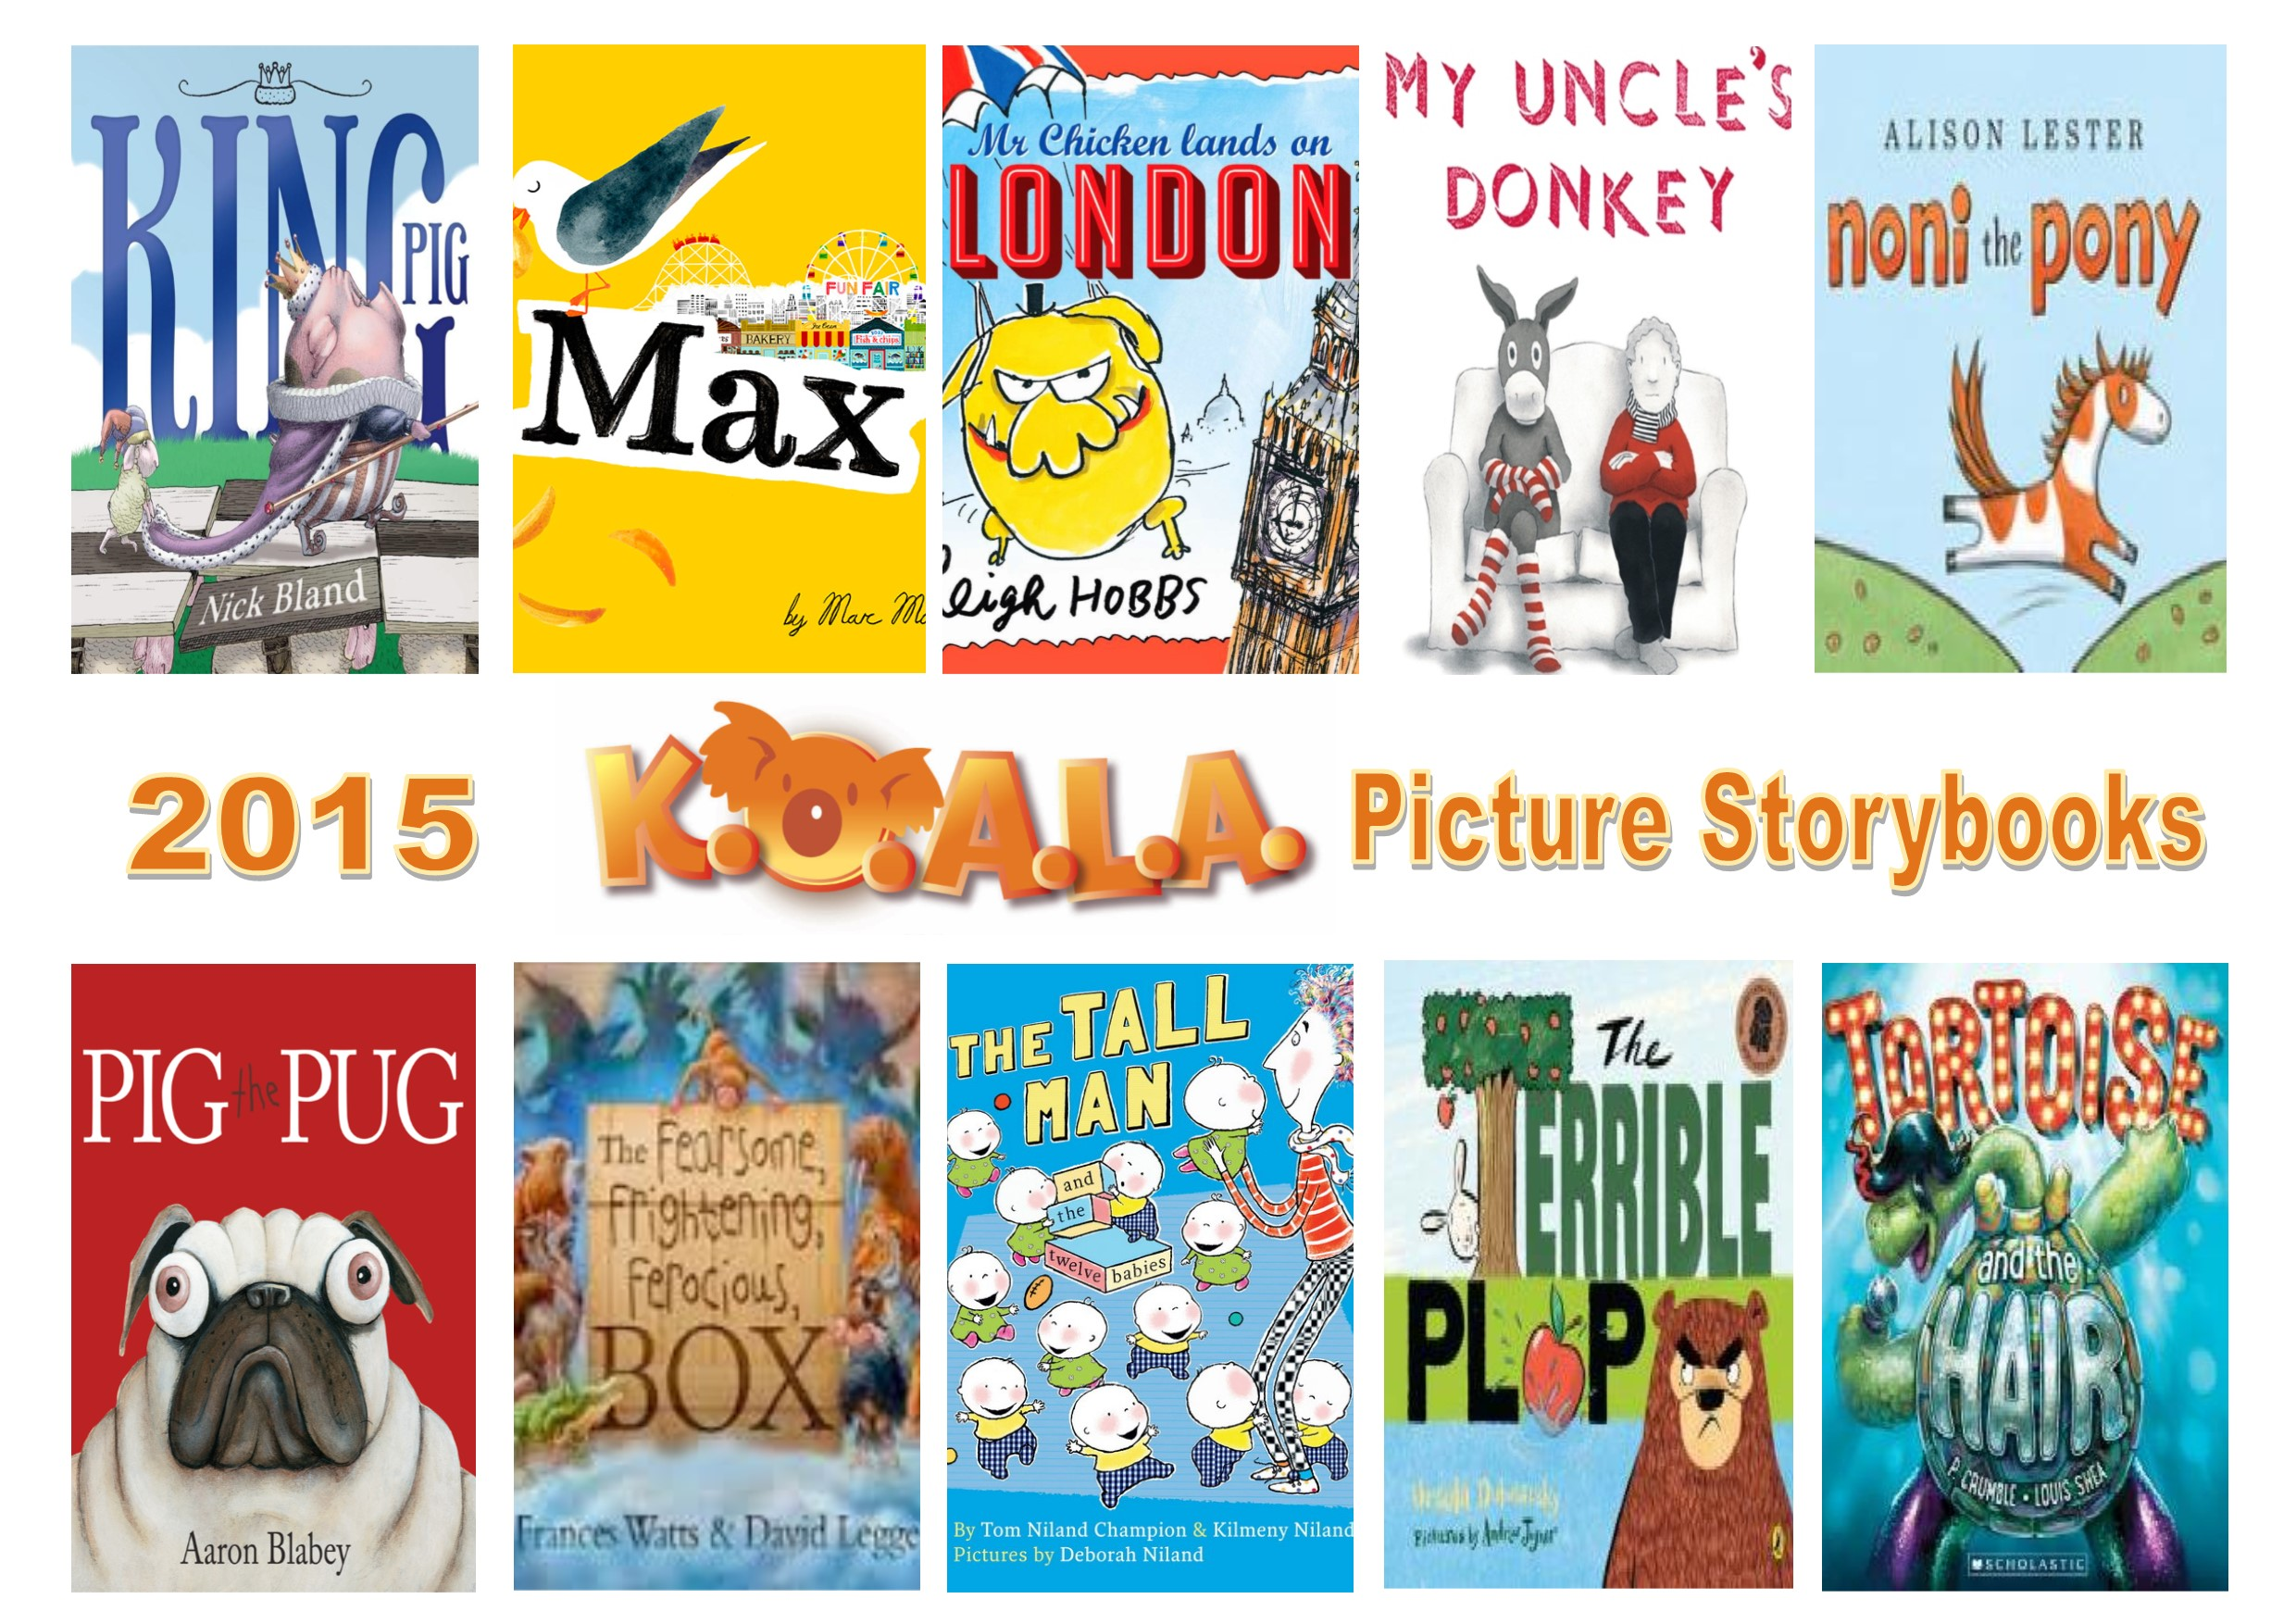 KOALA+Shortlist+Picture+Storybooks+2015.jpg